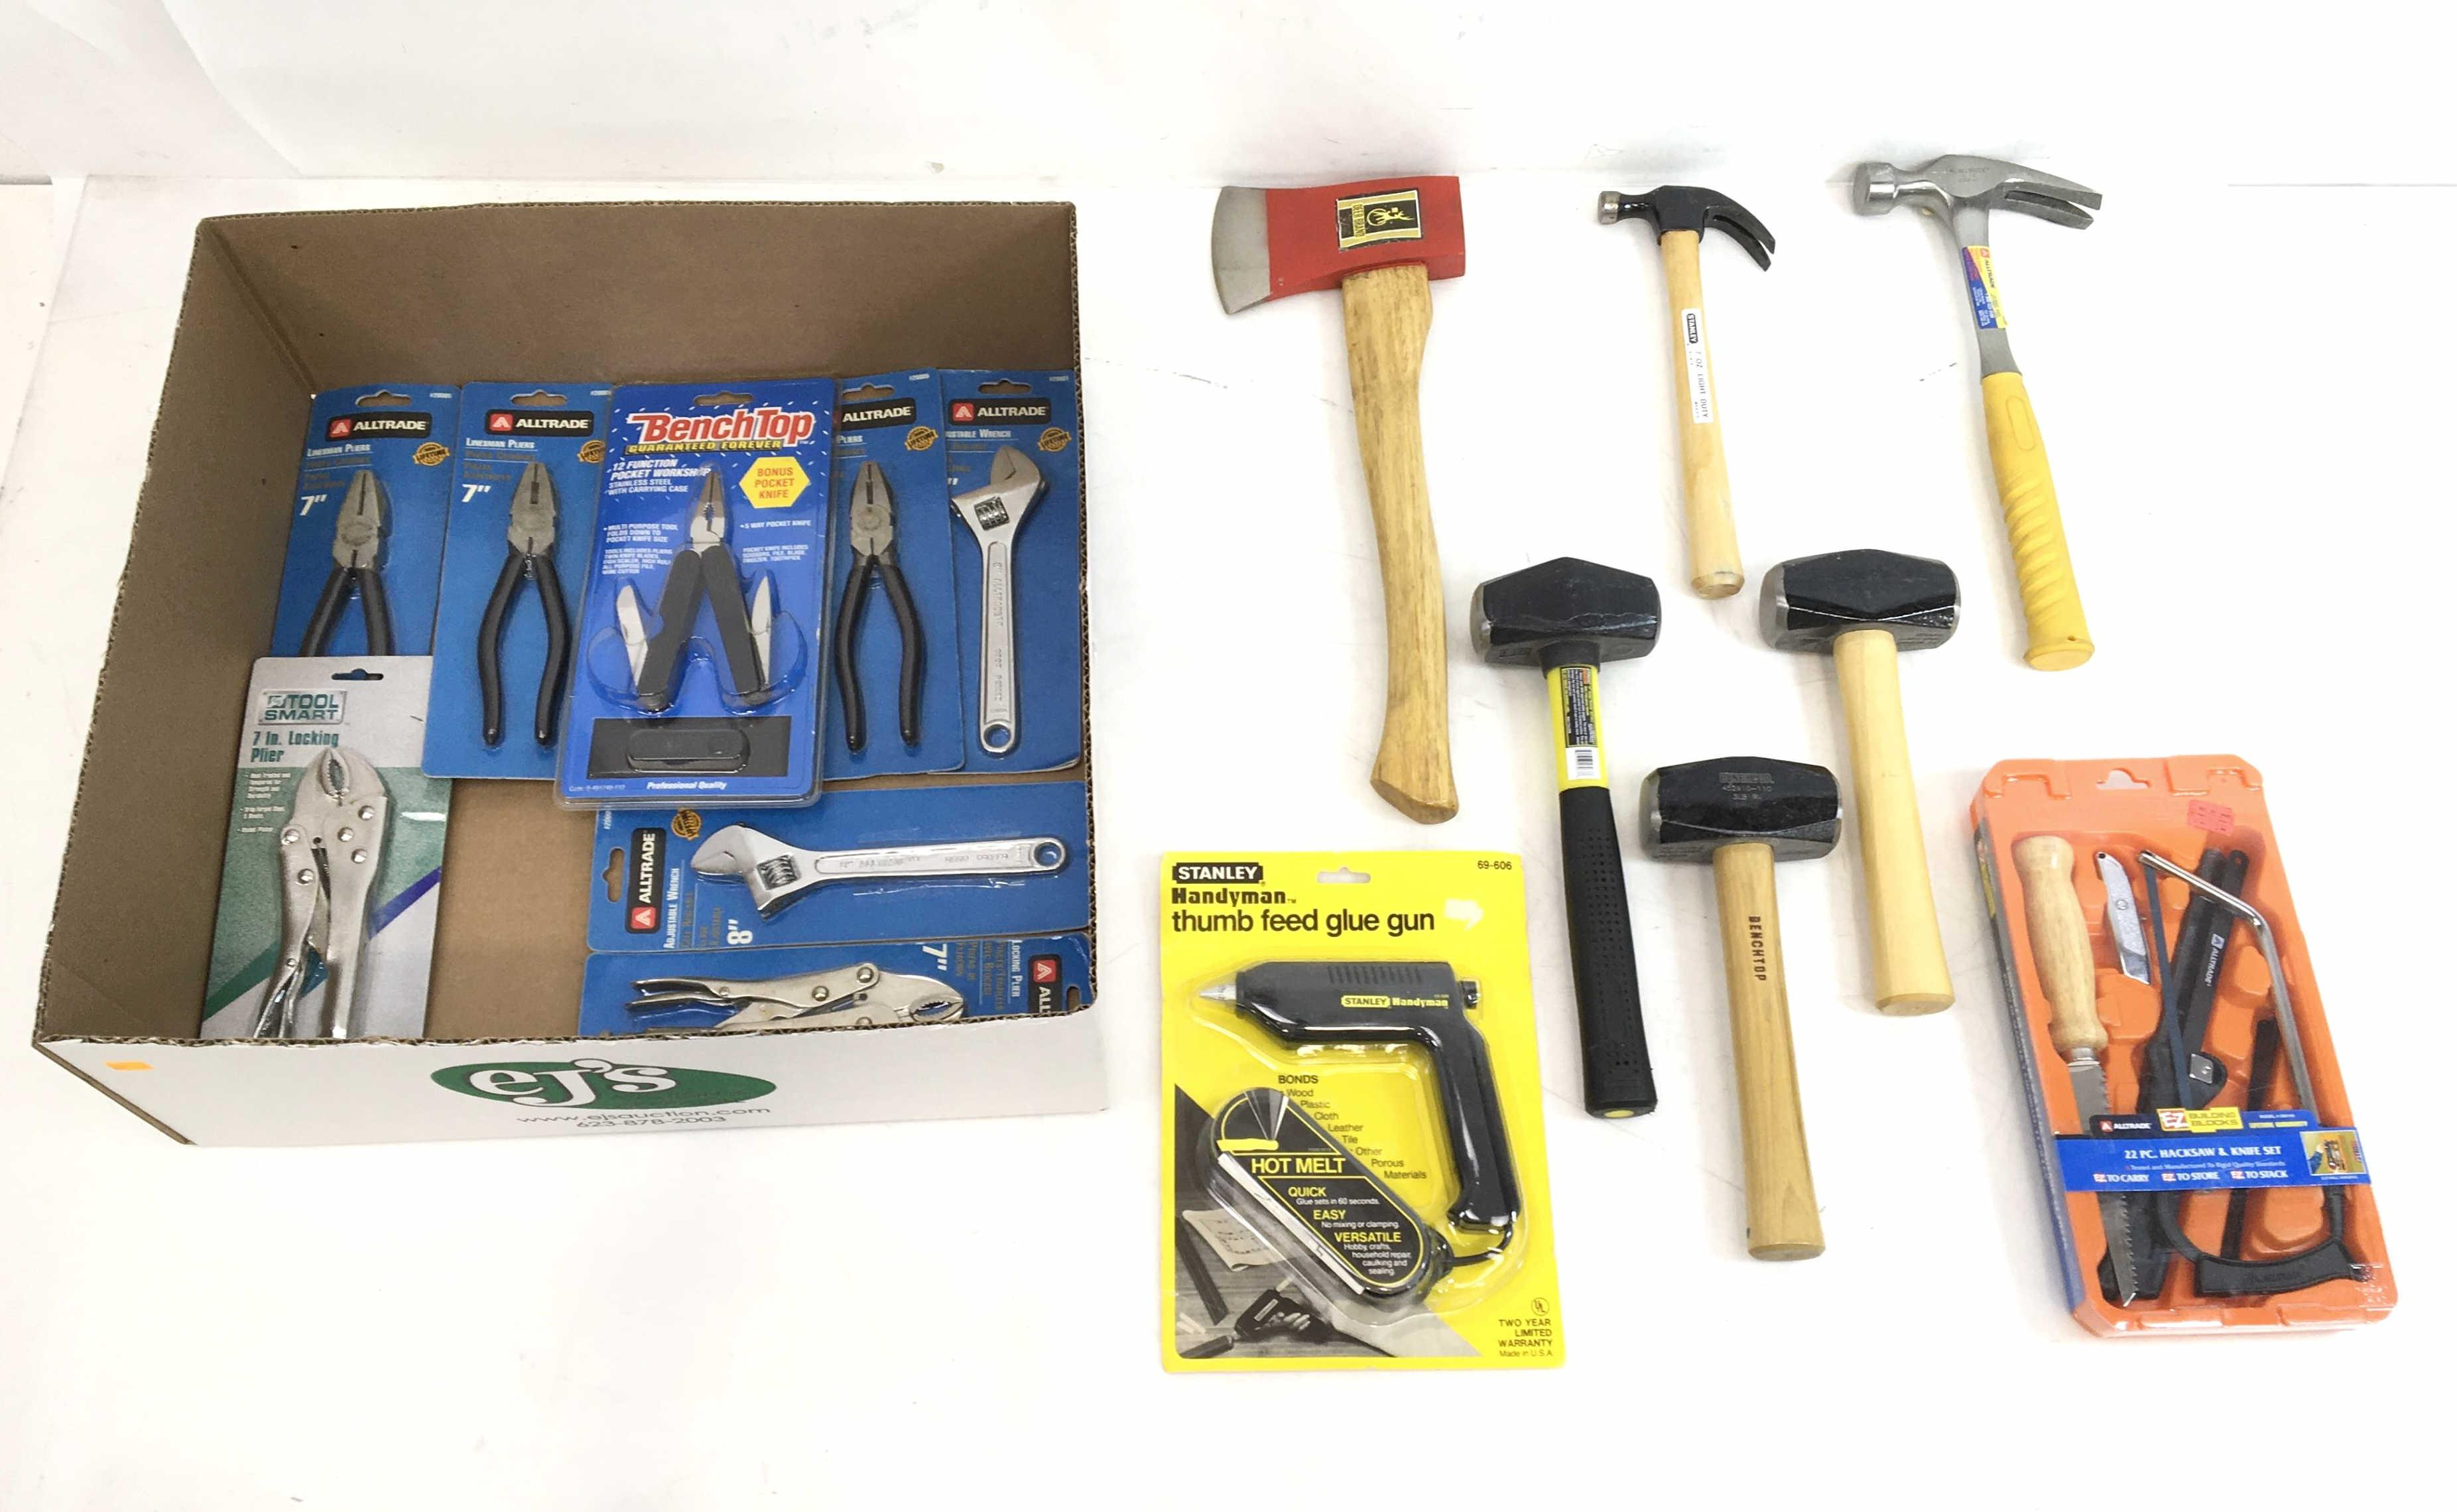 (16pc) Stanley, Alltrade, Bench Top, Tool Smart